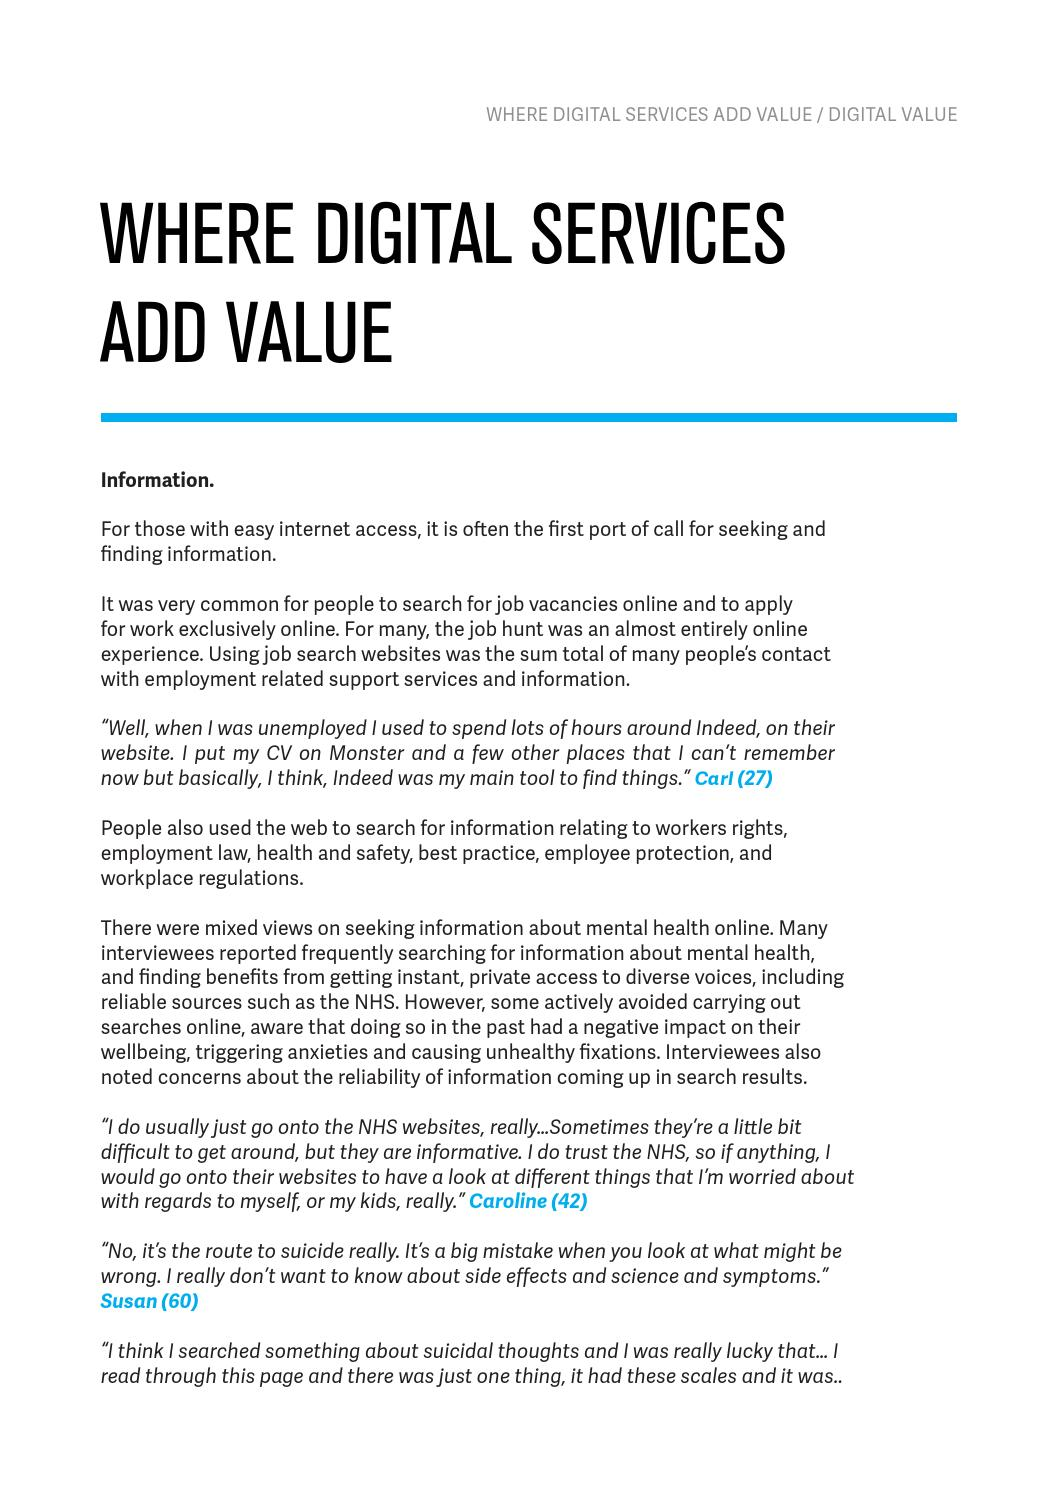 Creating Digital Tools For Mental Health And Employment Support The